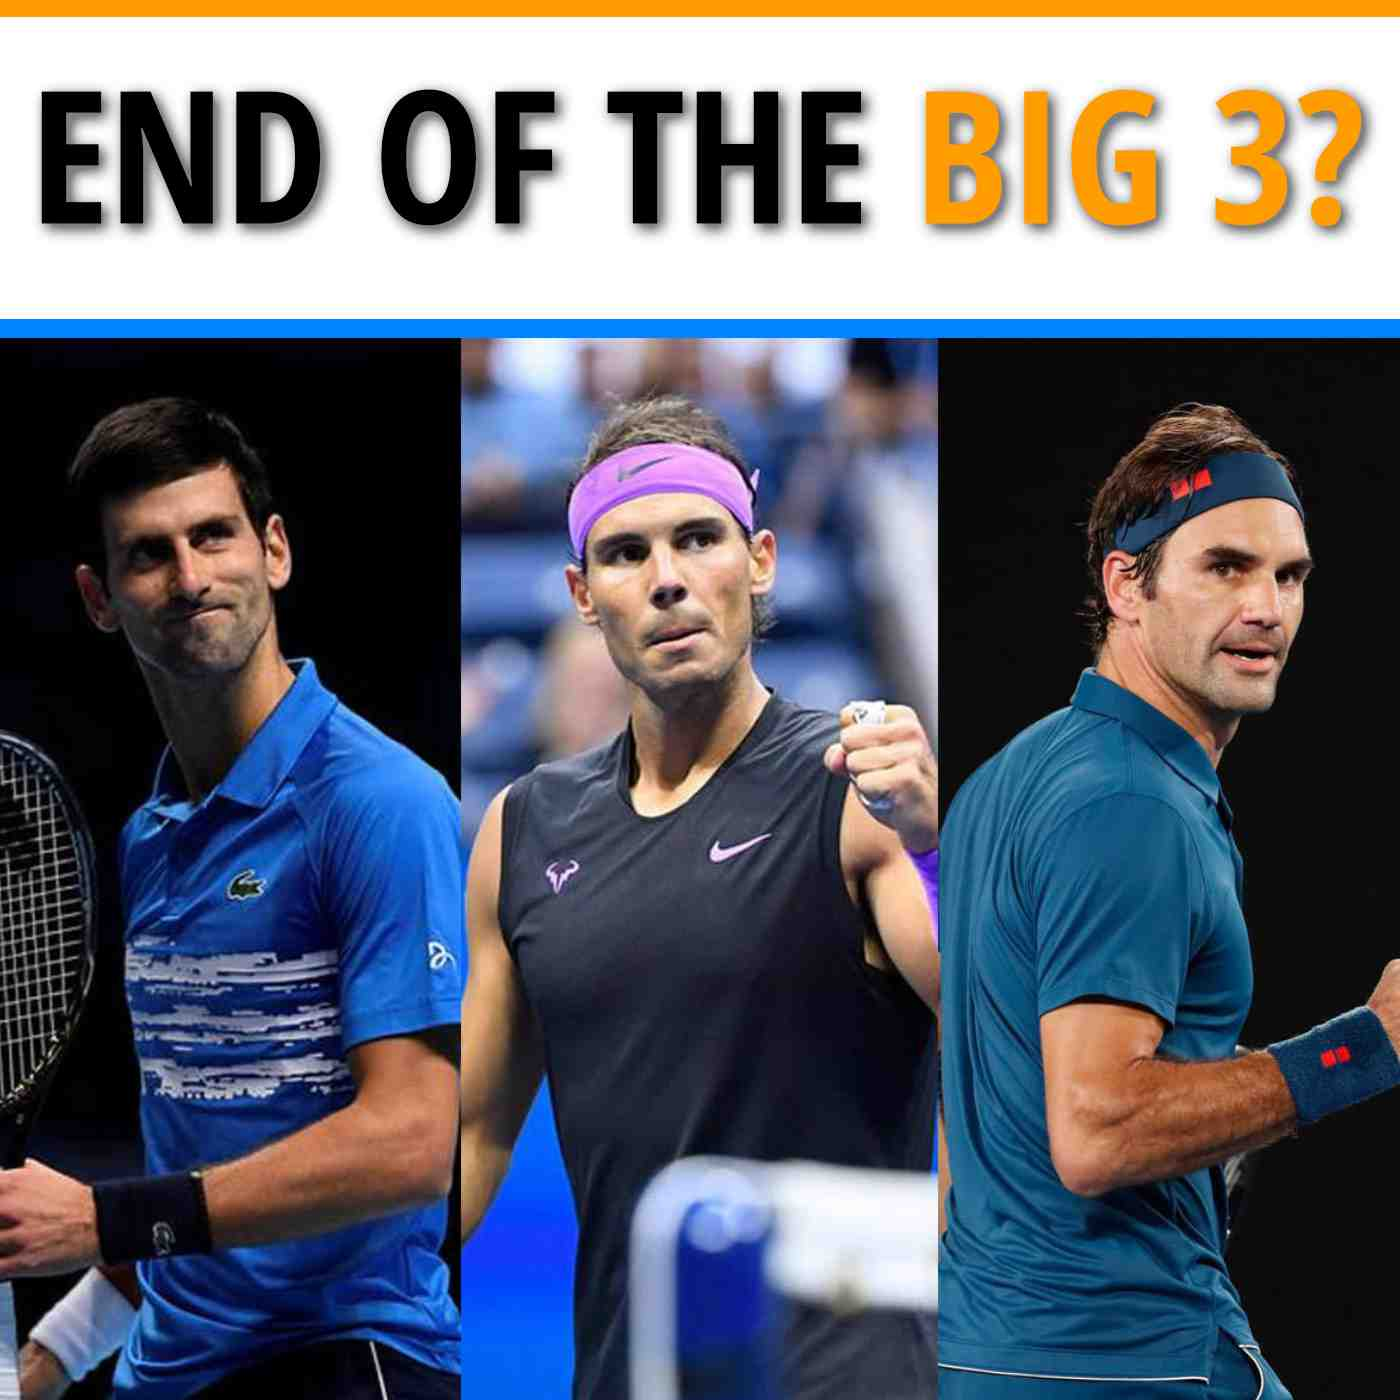 The end of the big three?